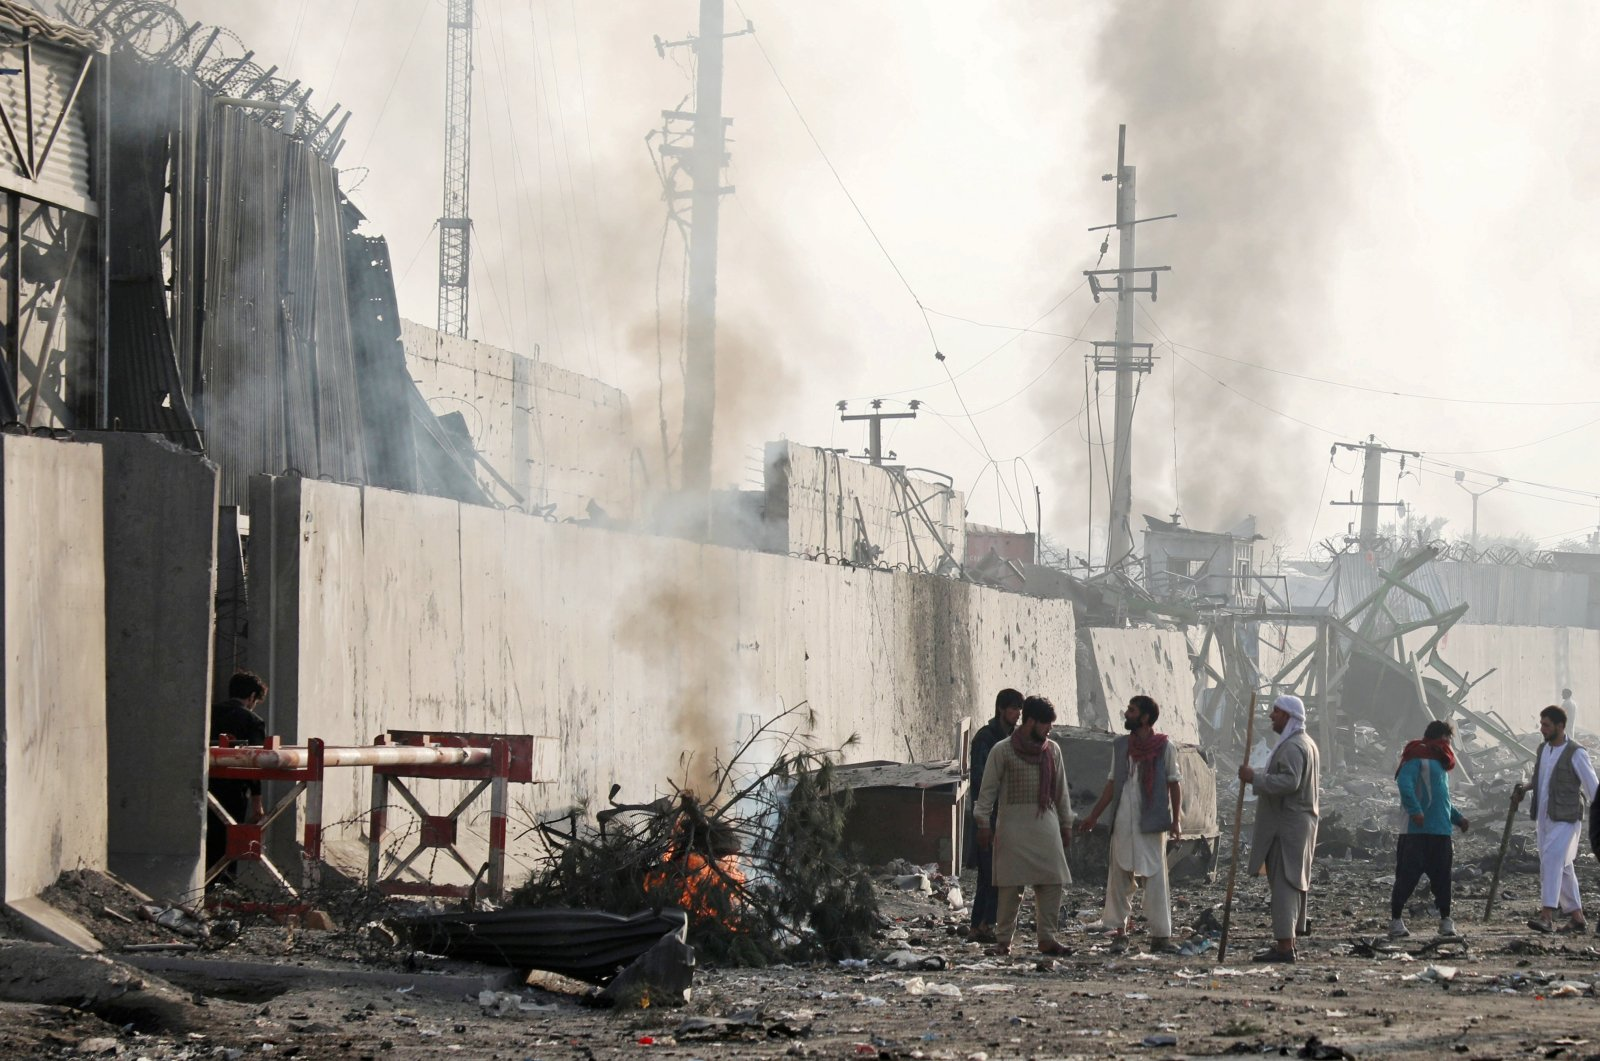 Angry Afghan protesters burn tyres and shout slogans at the site of a blast in Kabul, Afghanistan on Sept. 3, 2019. (Reuters Photo)